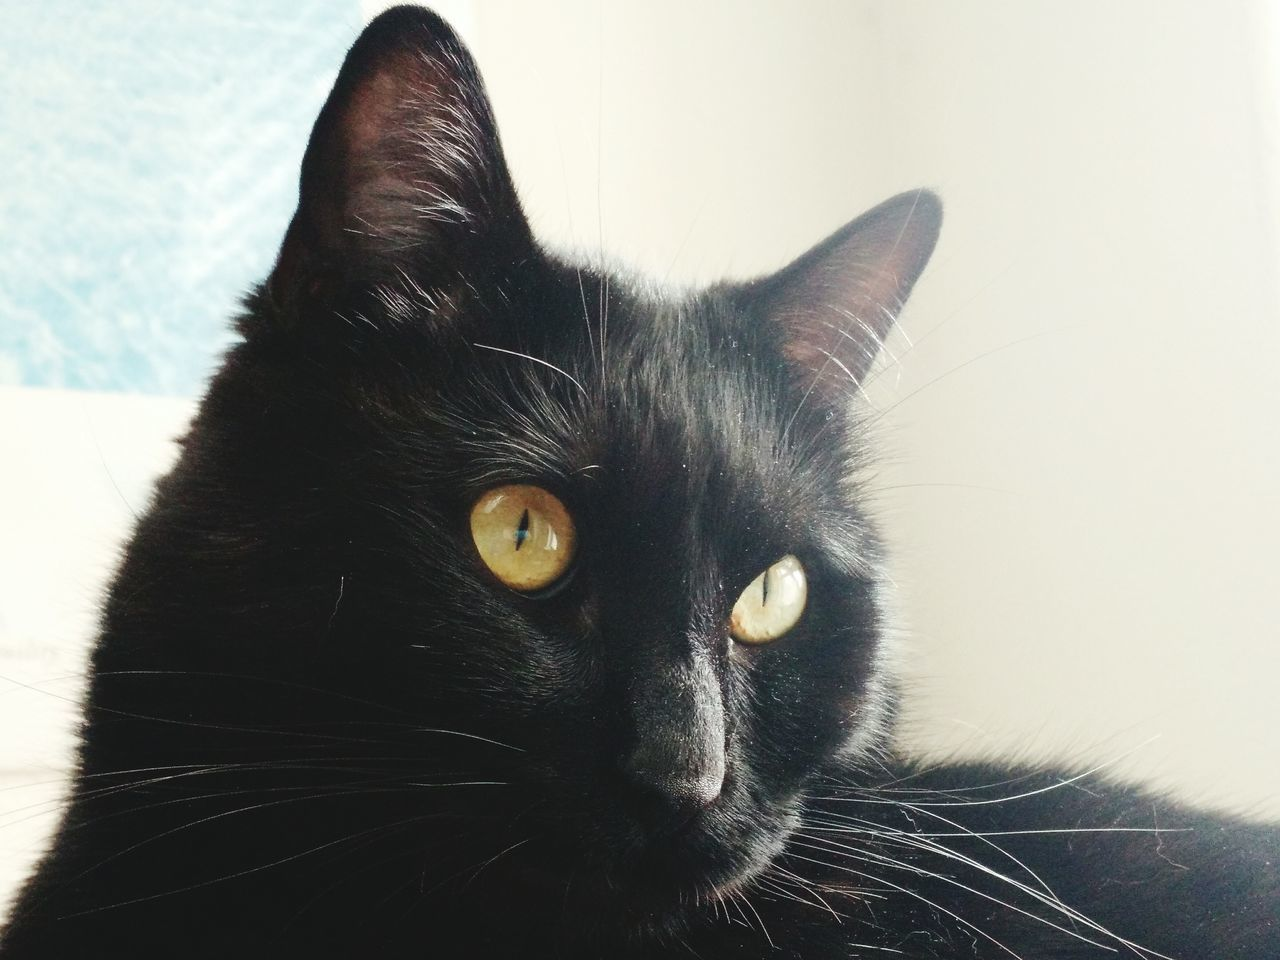 One Animal Pets Domestic Animals Mammal Domestic Cat Animal Themes Black Color Feline Indoors  Close-up Yellow Eyes No People Day Black Cat Photography Gazing Tranquility Black Cat Cat Eyes Cat♡ Cat Gaze Black Cats Are Beautiful Yellow Eyed Cat Cat Lovers Cats Of EyeEm